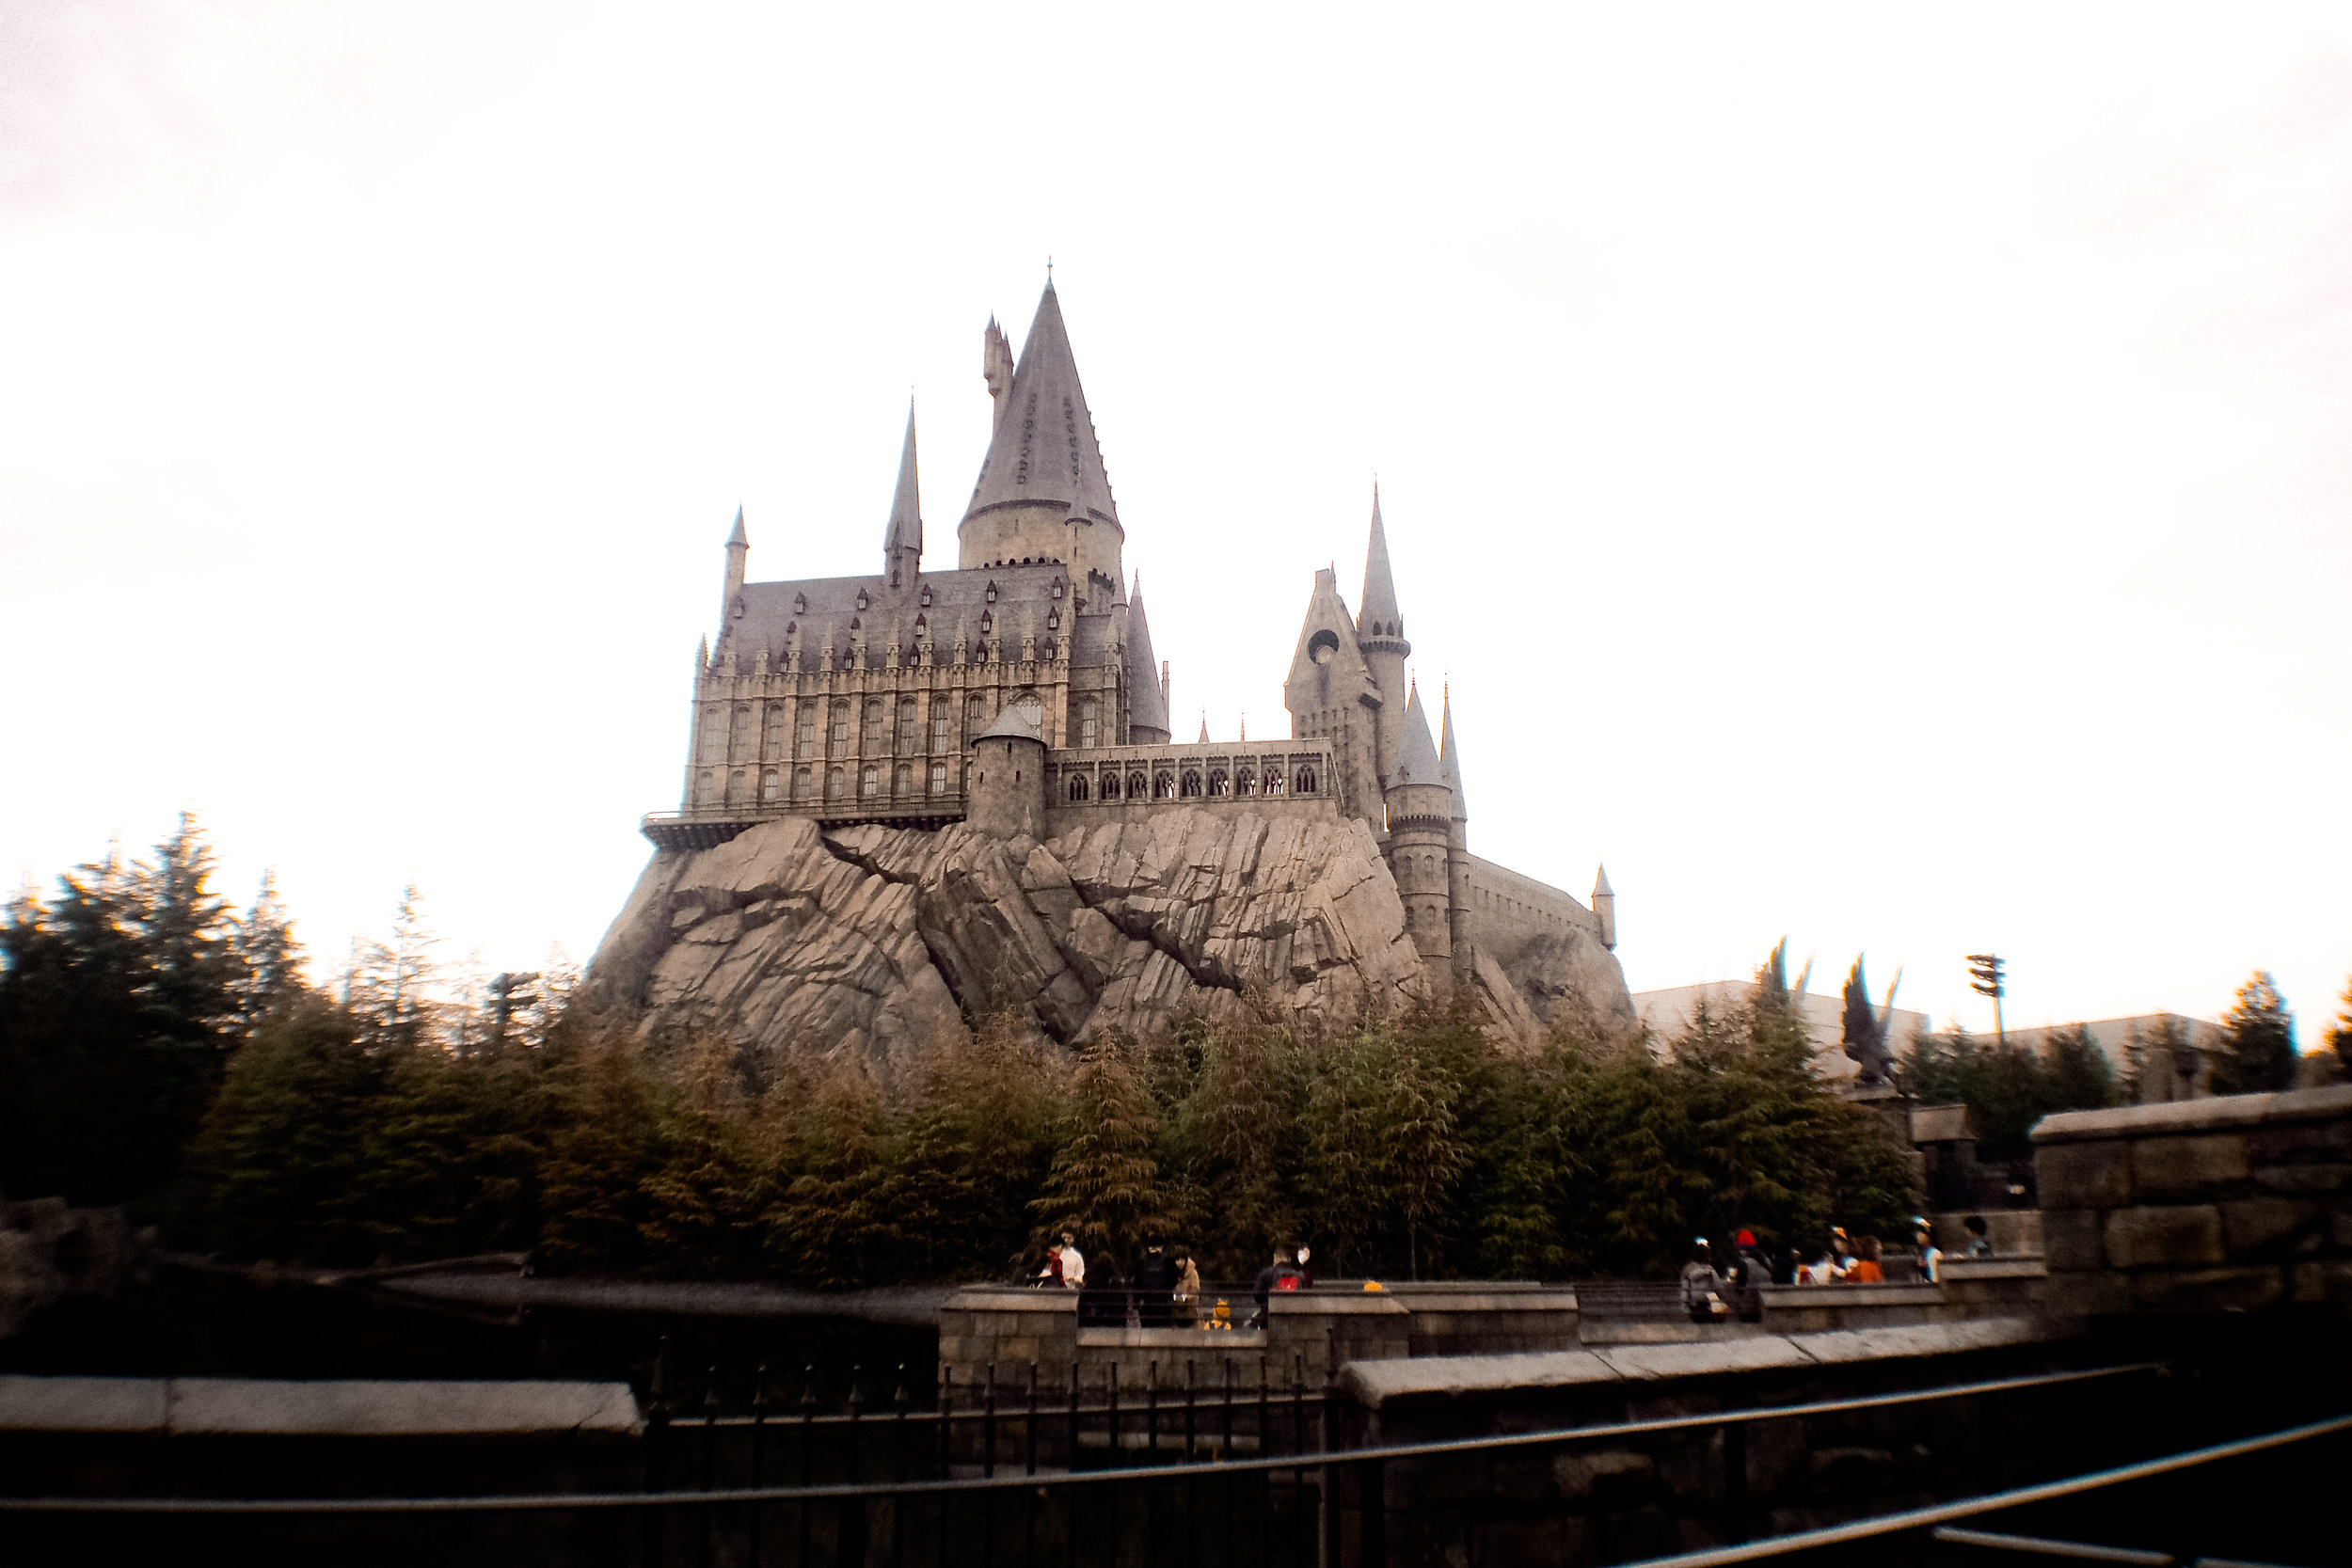 The majestic Hogwarts Castle! This is where the coolest ride in the Wizarding World is, the Harry Potter and the Forbidden Journey!